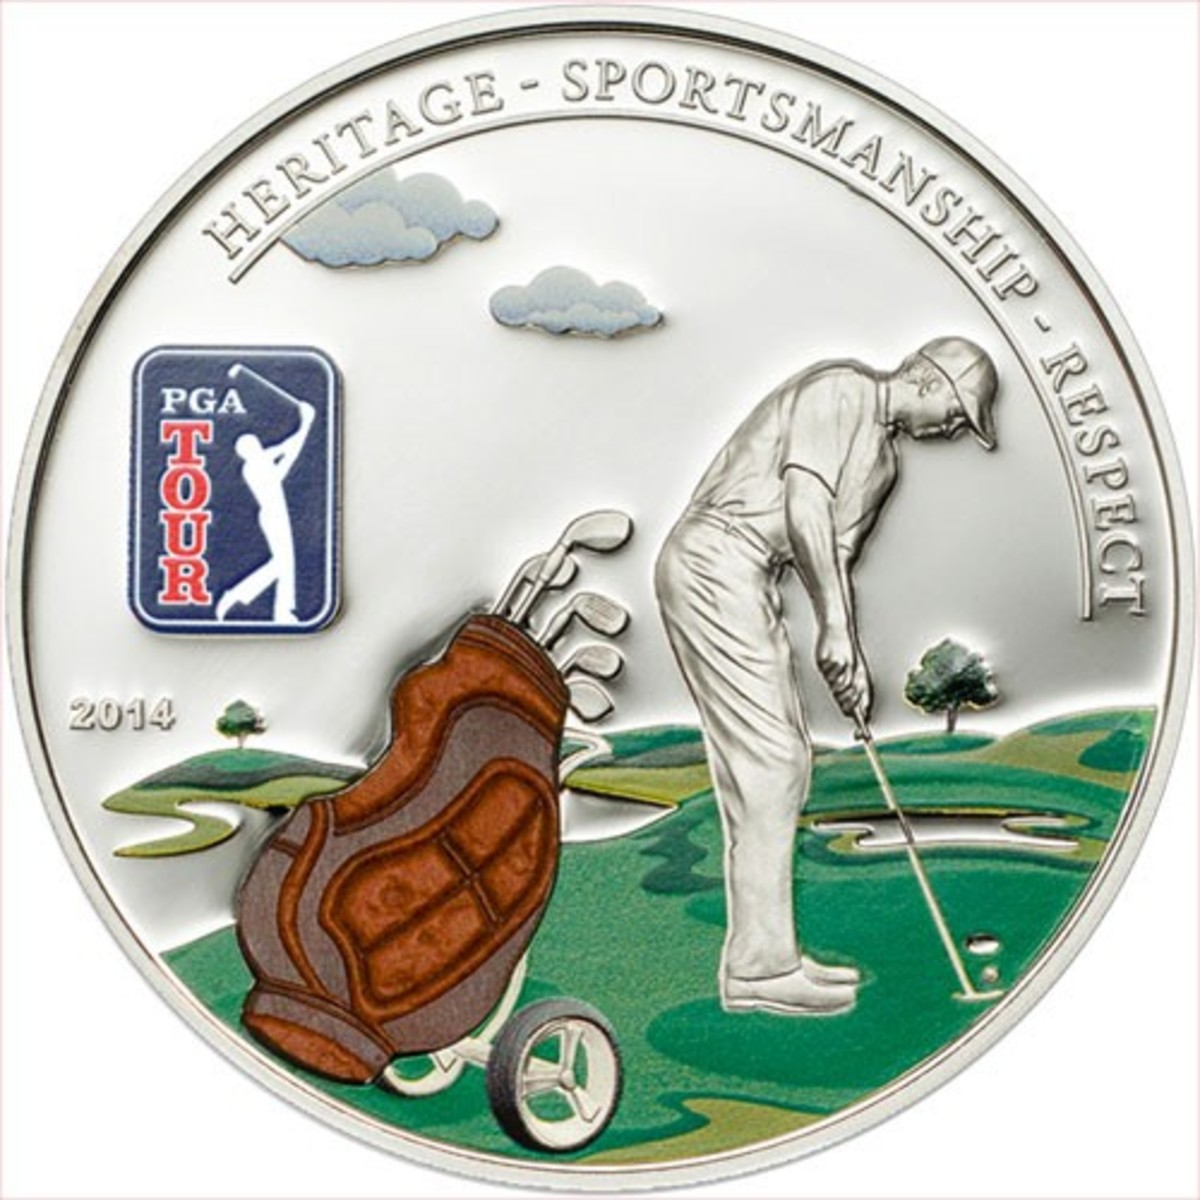 Enjoy a game of golf? Buy this coin commemorating the PGA Tour and the wonderful game of golf.